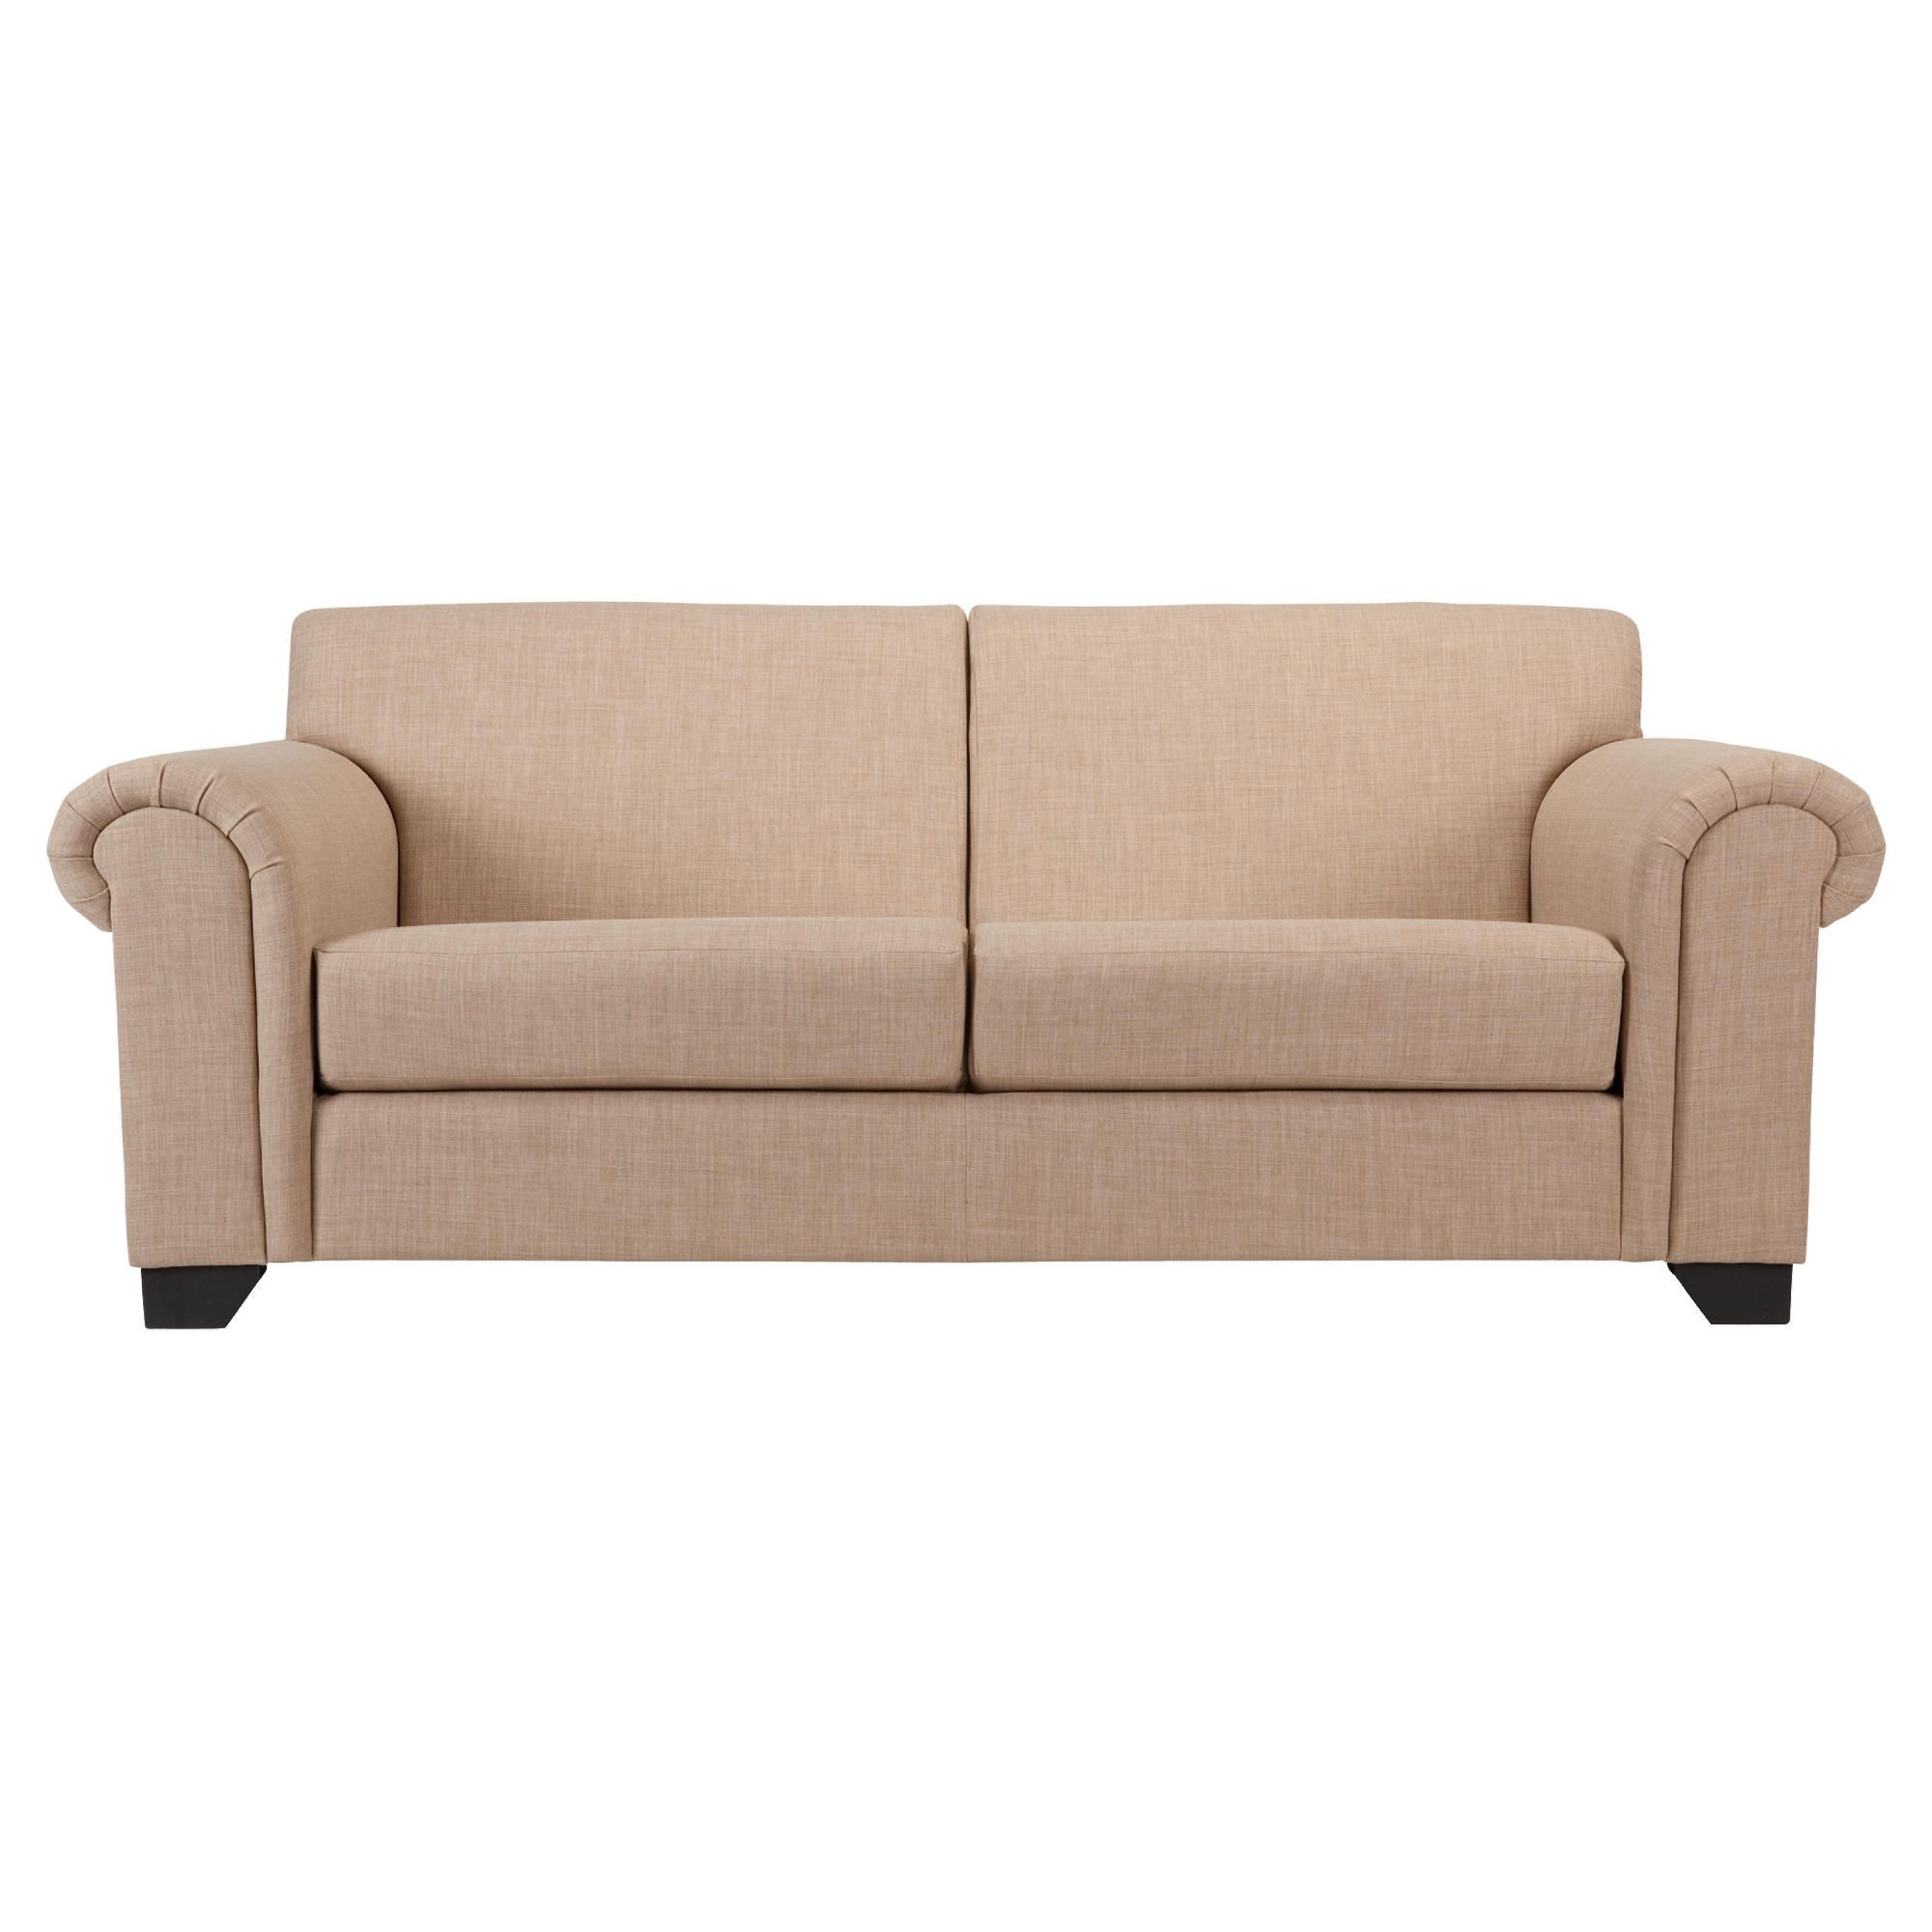 Chester fabric medium sofa natural at Tesco Direct